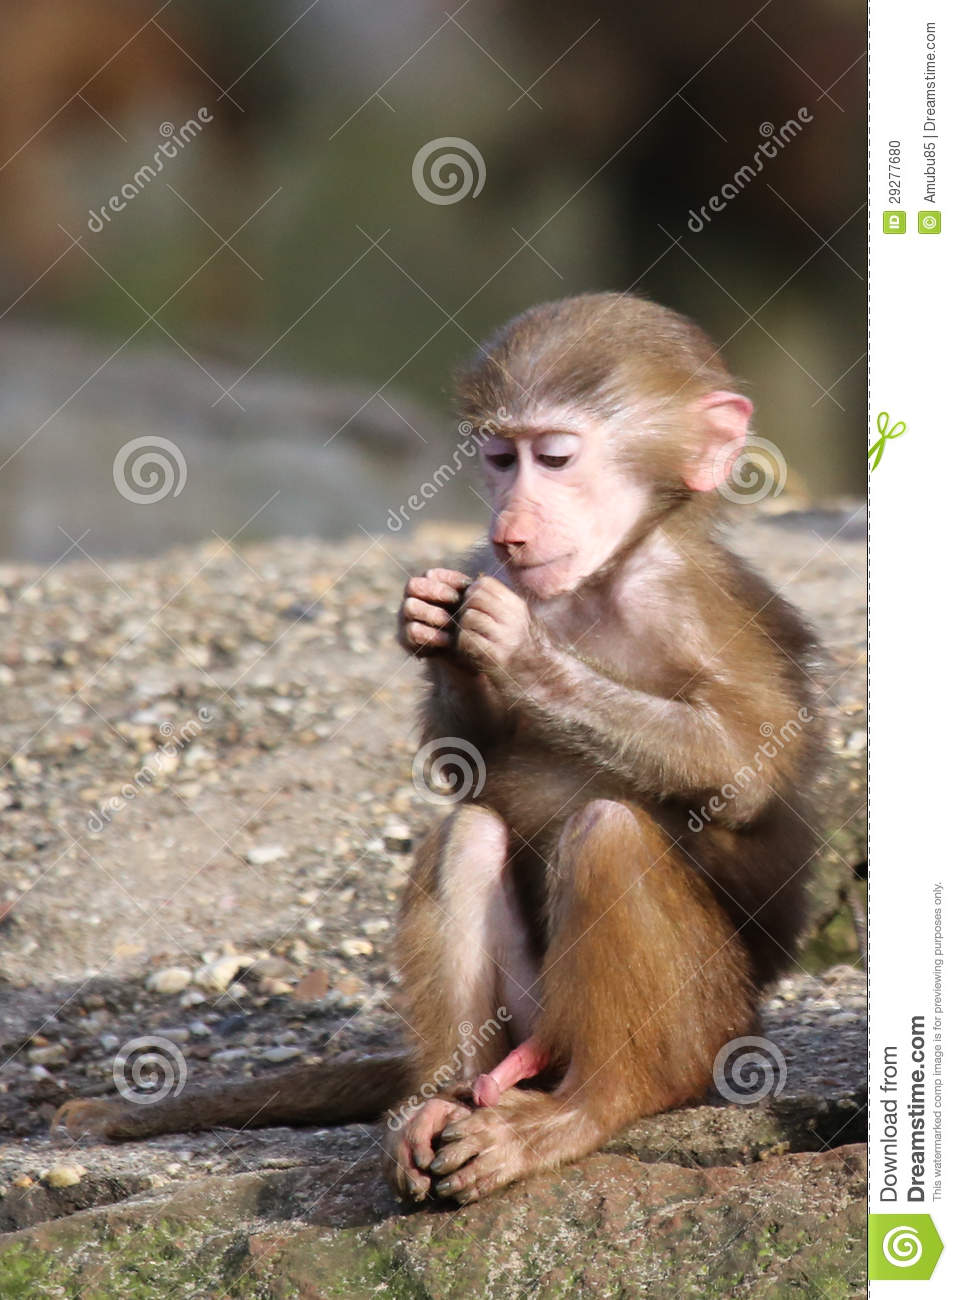 dream baboons meaning